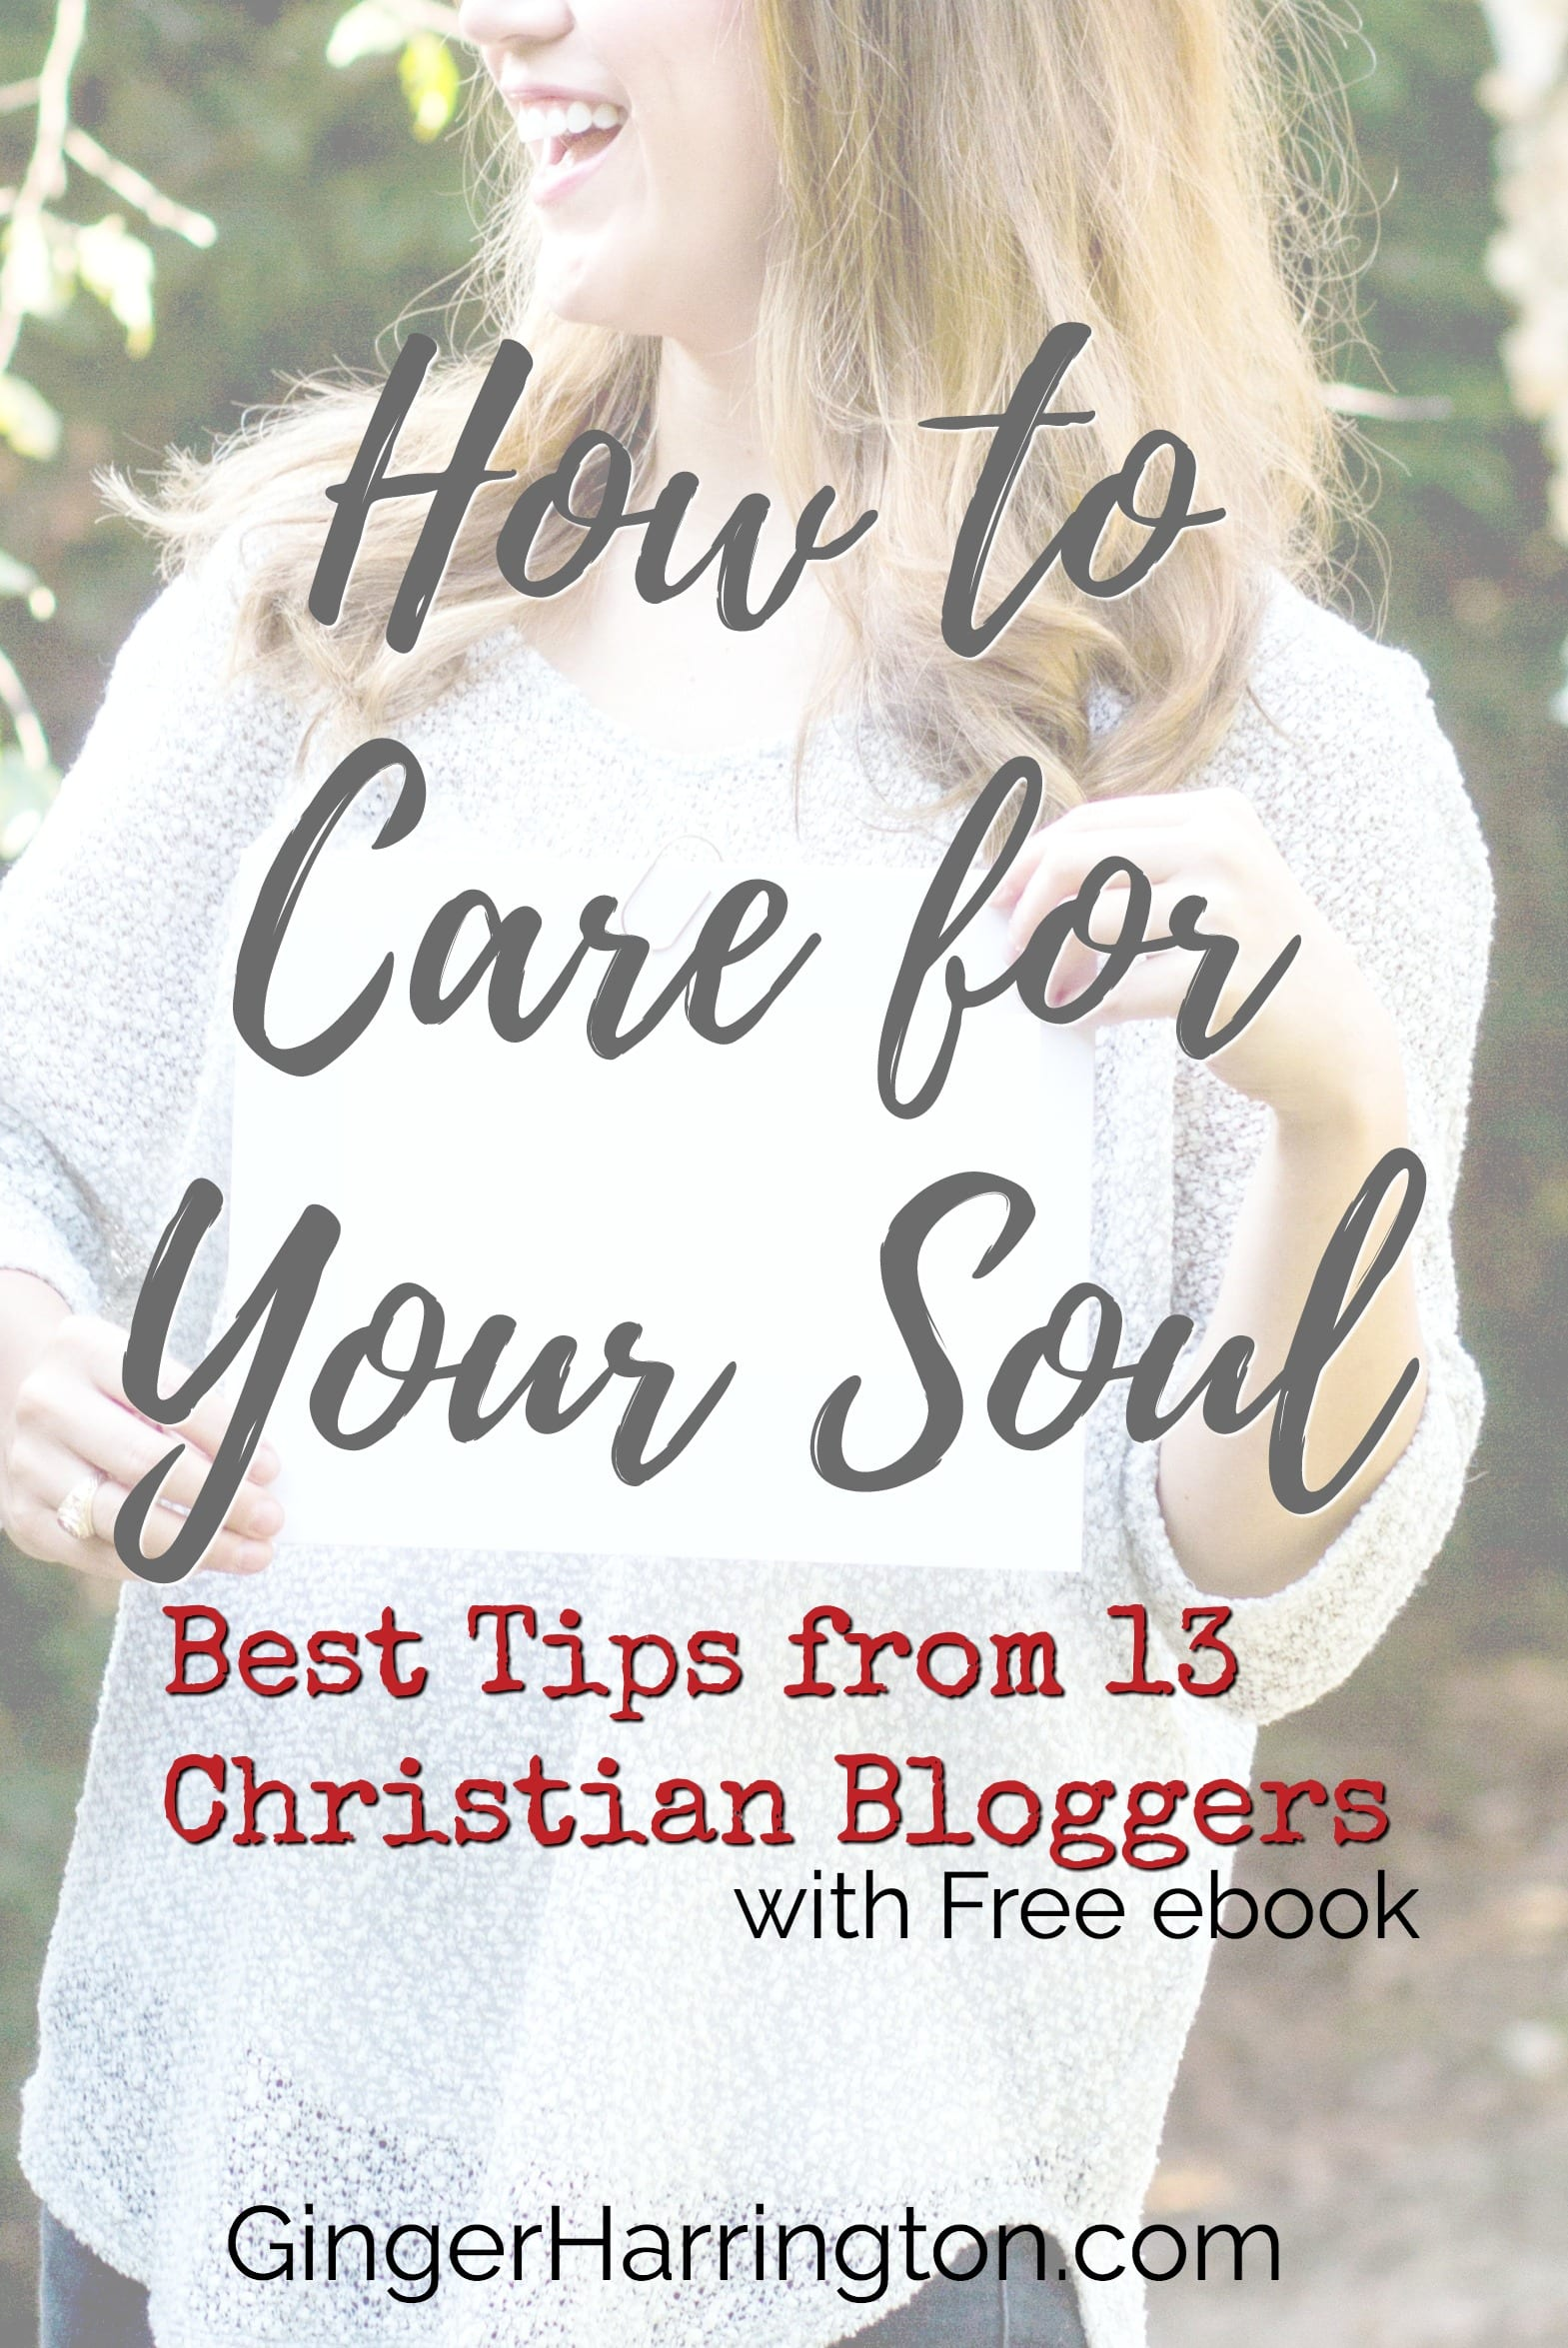 How to Care for Your Soul: Best Tips from 13 Bloggers